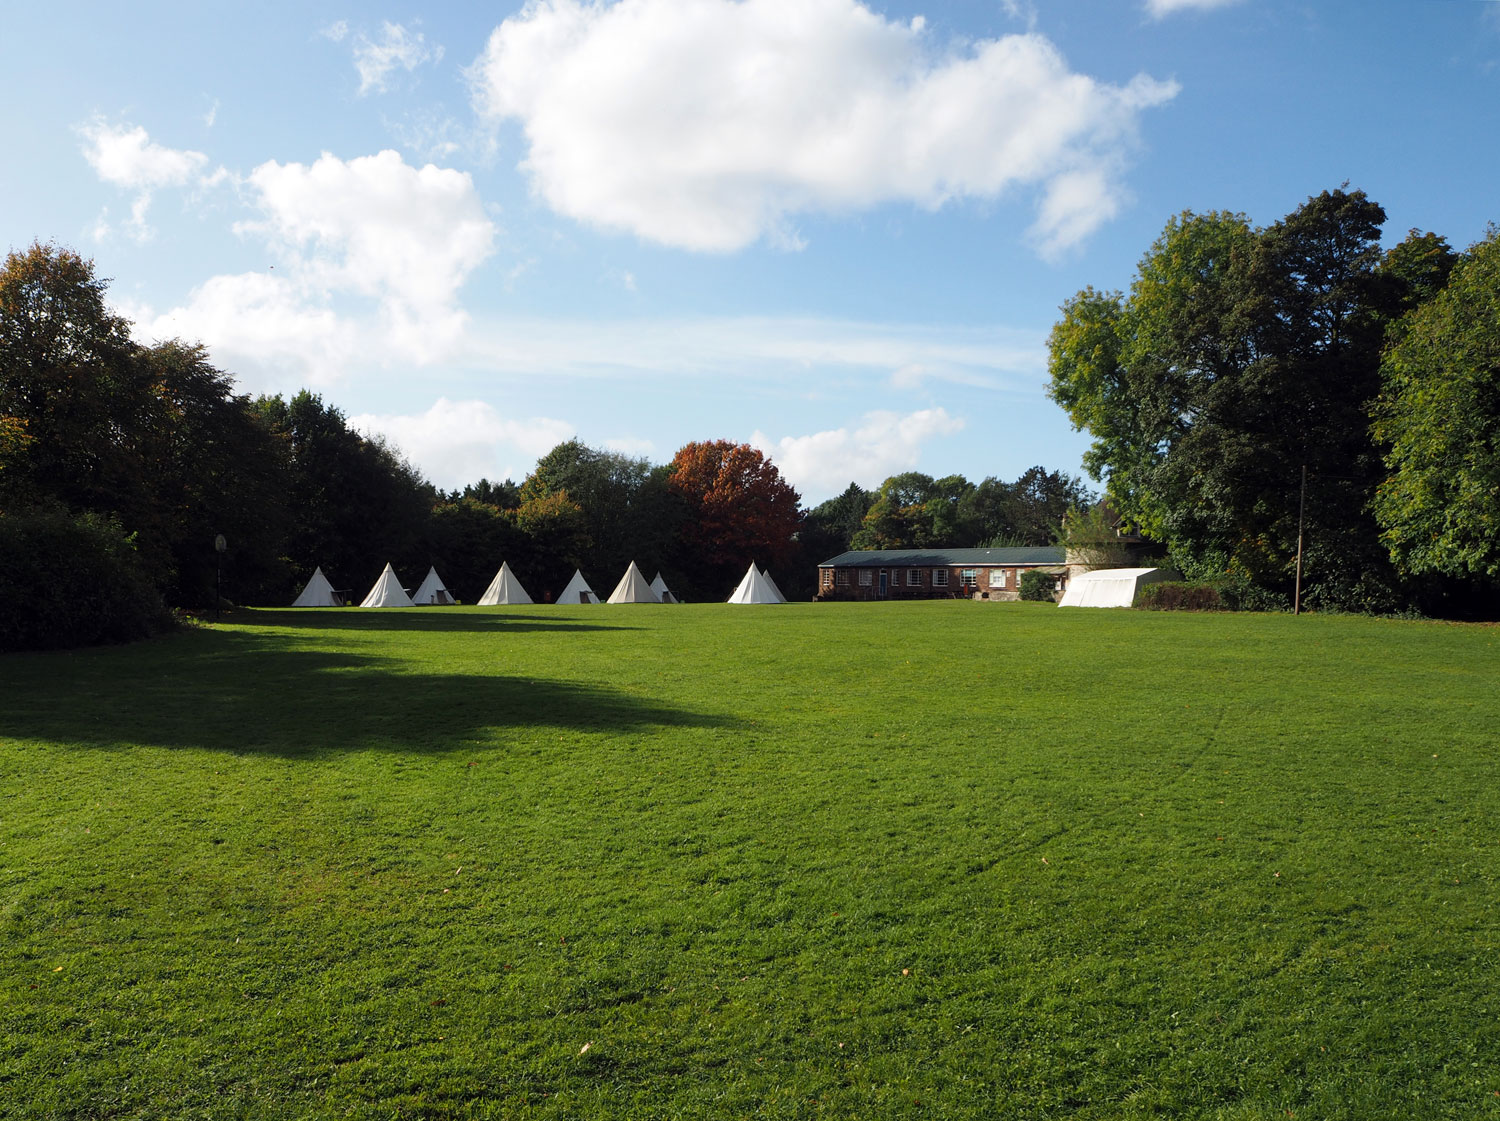 The camping field at Thornbridge Outdoors